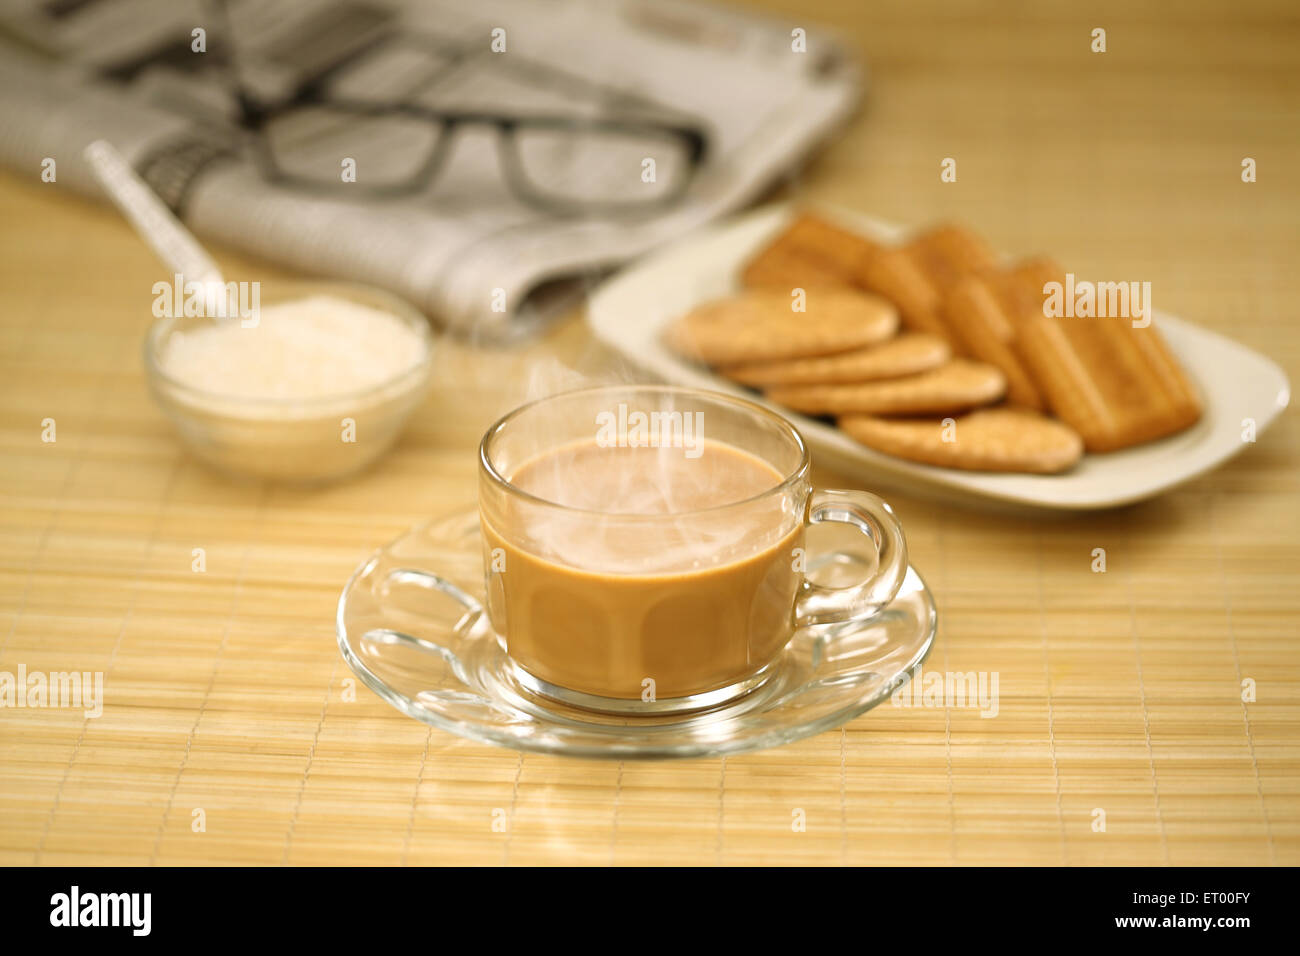 Cup of hot tea with sugar ; biscuits ; newspaper and spectacle - Stock Image